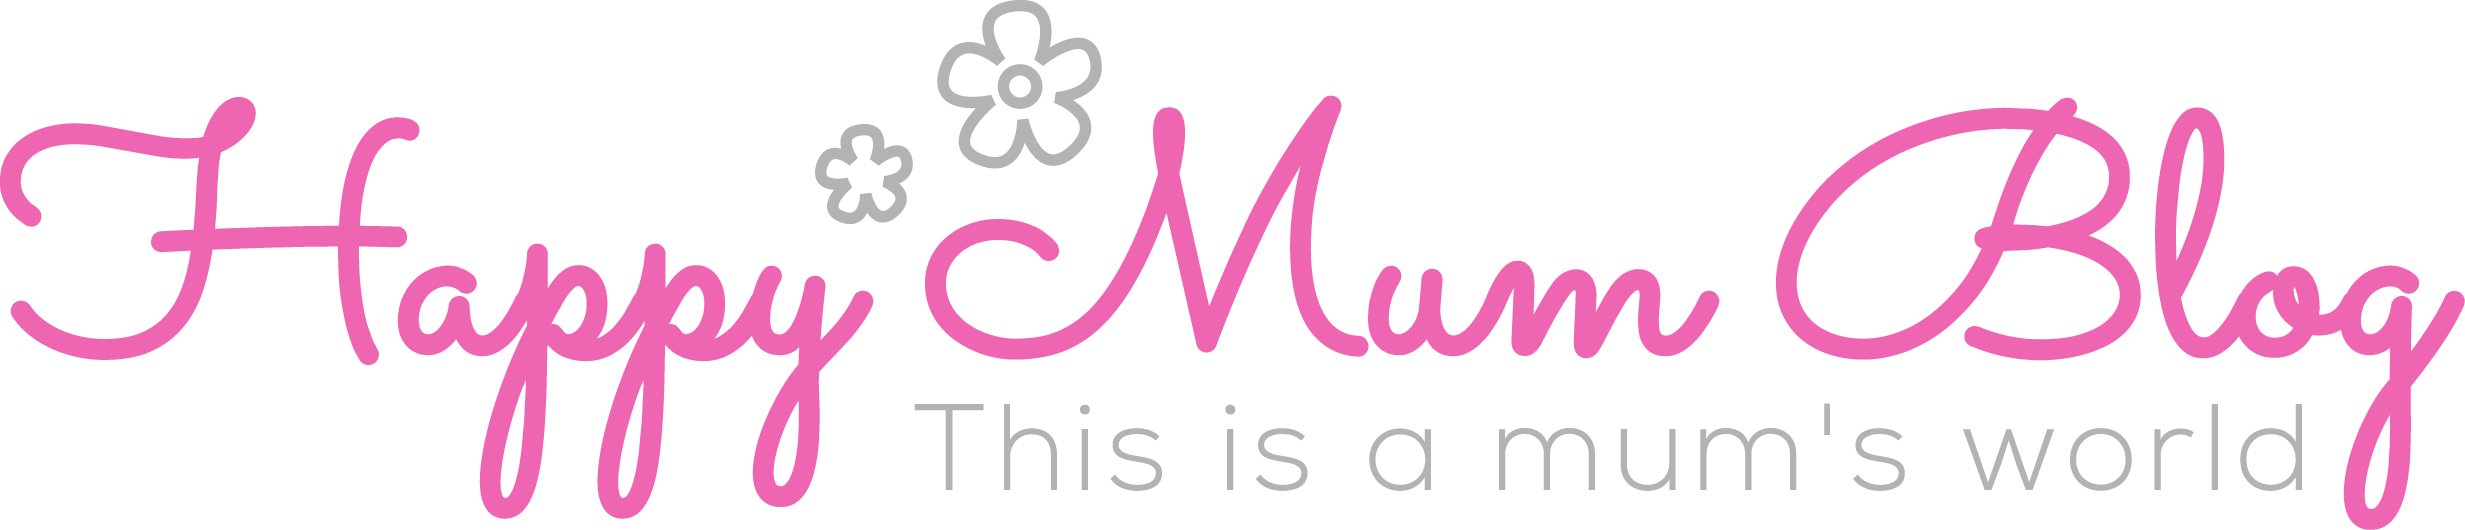 Logo Happy Mum Blog - This is a mum's world